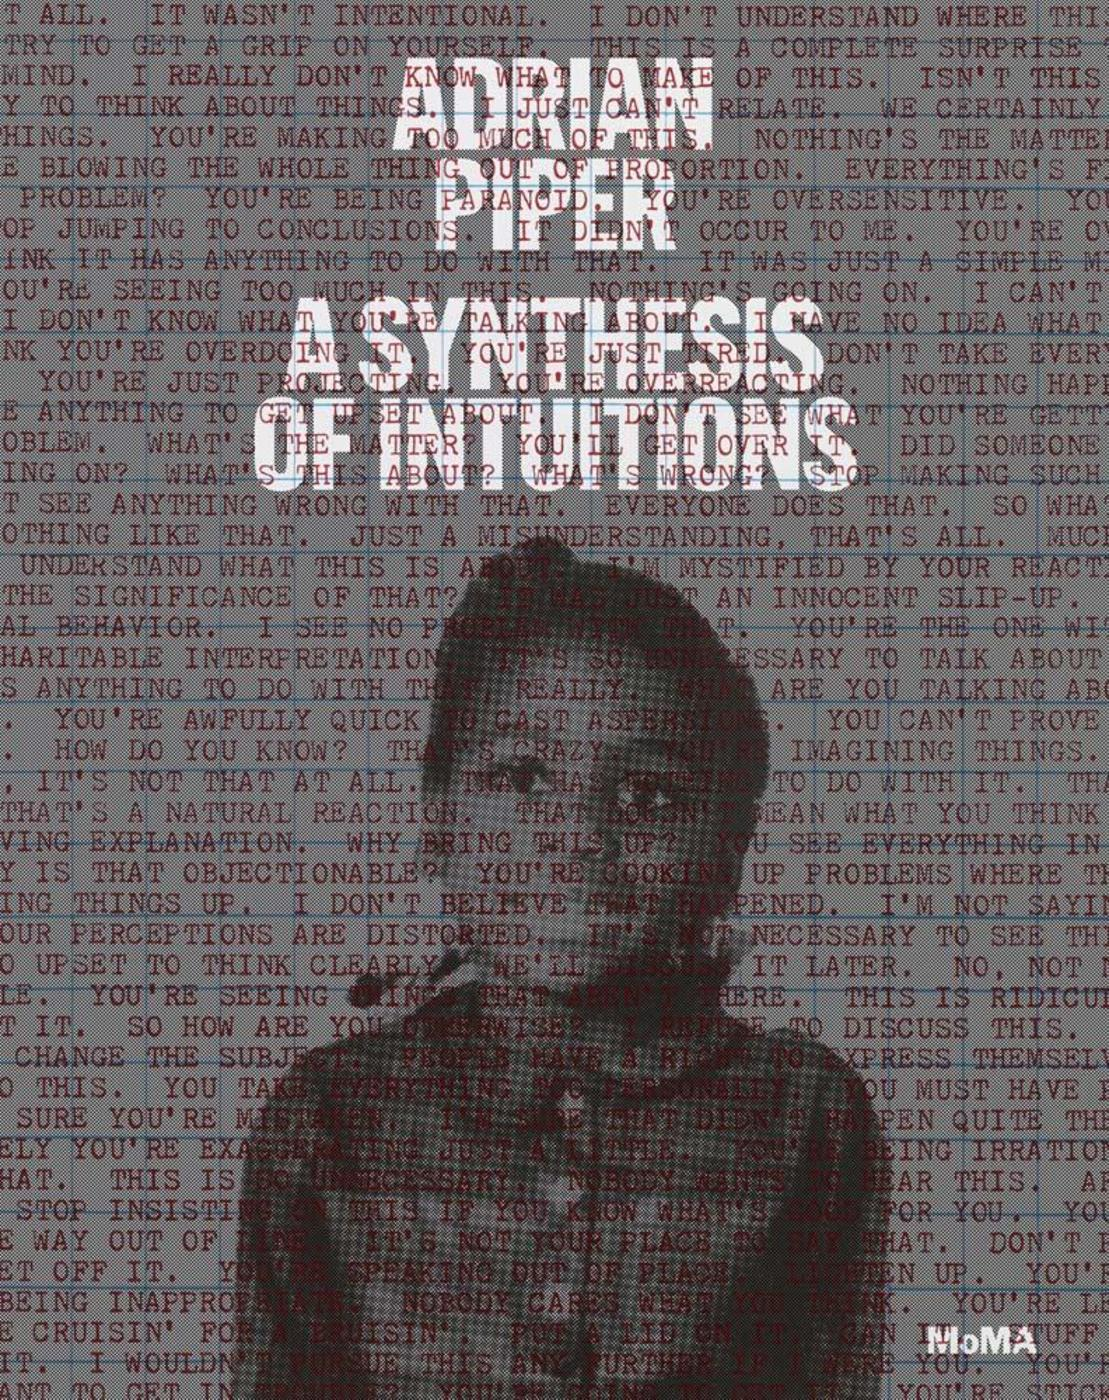 Adrian piper a synthesis of intuitions 1965 2016 1 1024x1024 2x